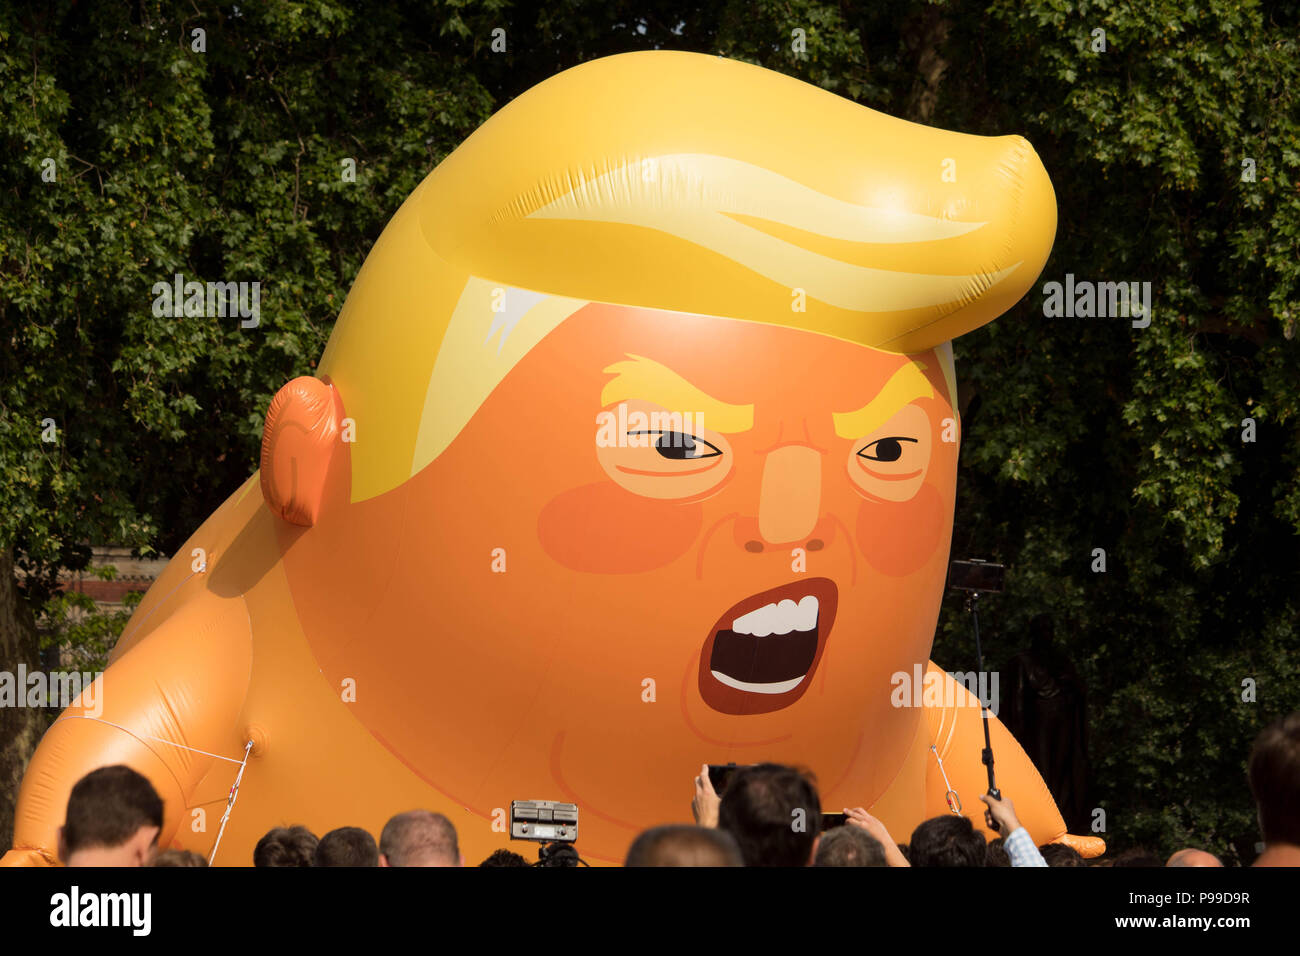 Close-up of 'Trump Baby' a giant inflatable effigy of US President Trump which was flown during protests at Parliament Square Gardens, London, UK. - Stock Image